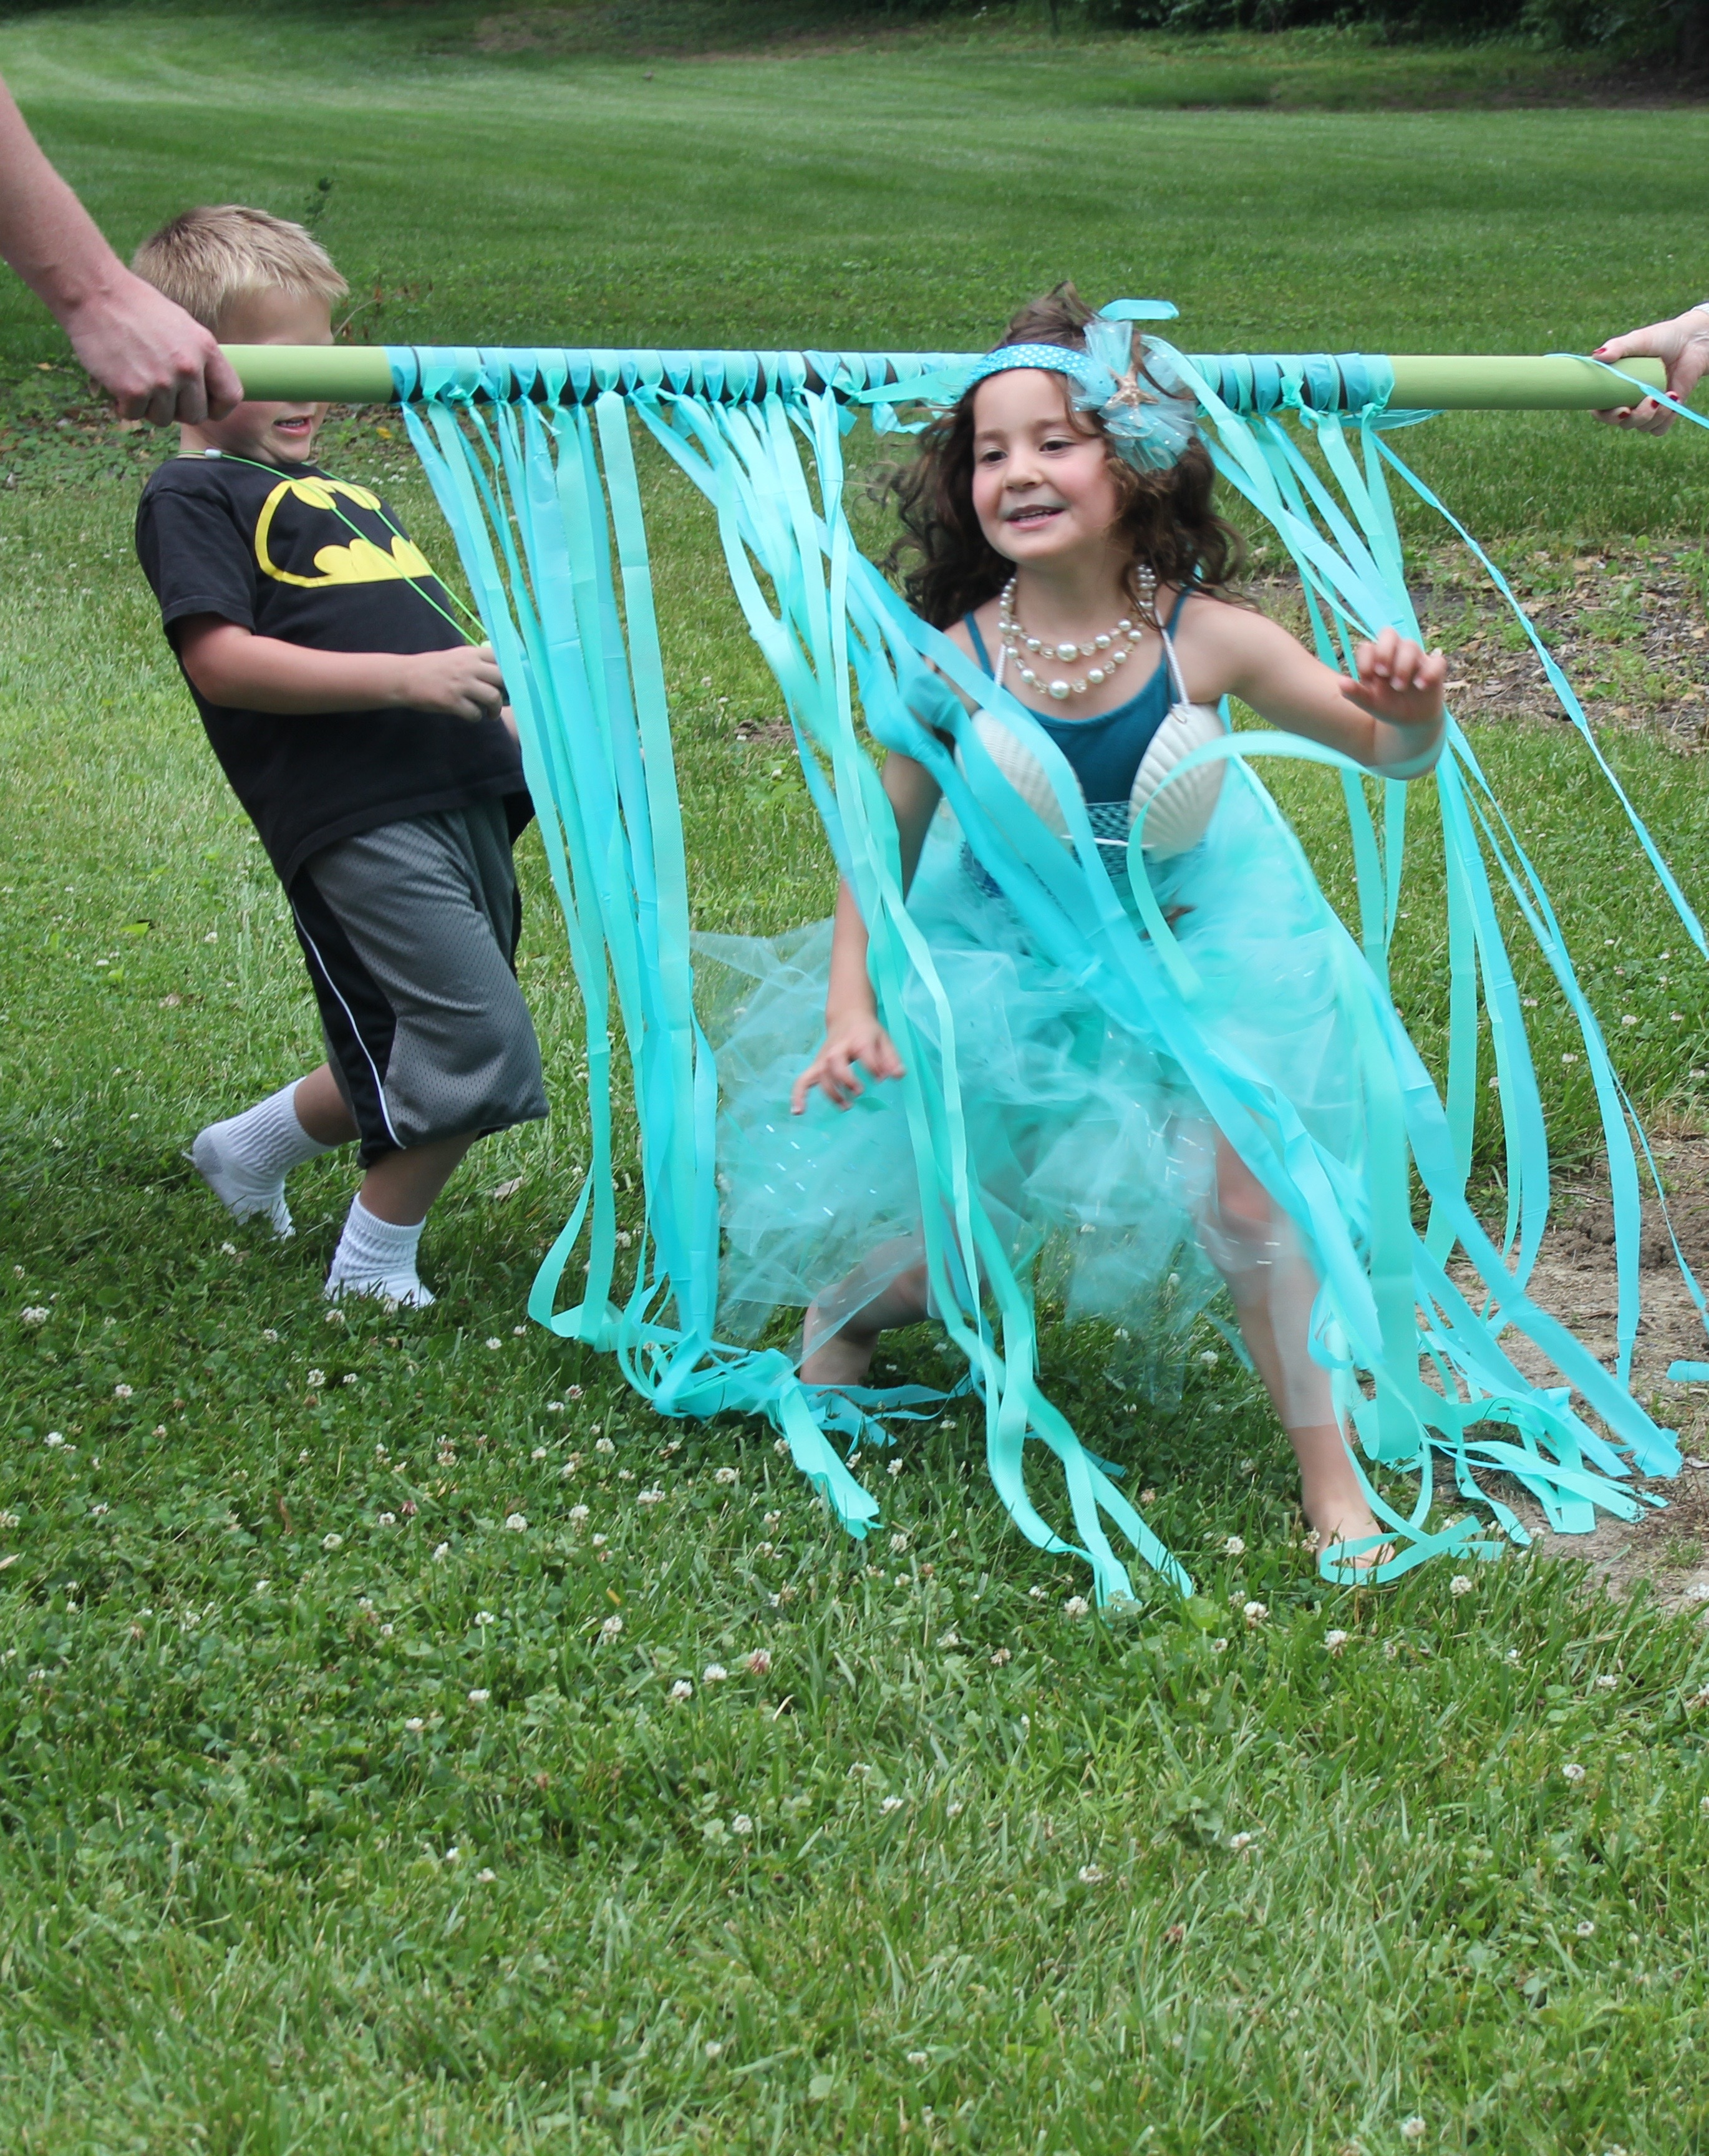 mermaid beach party game ideas you can make - 365 Days of Crafts